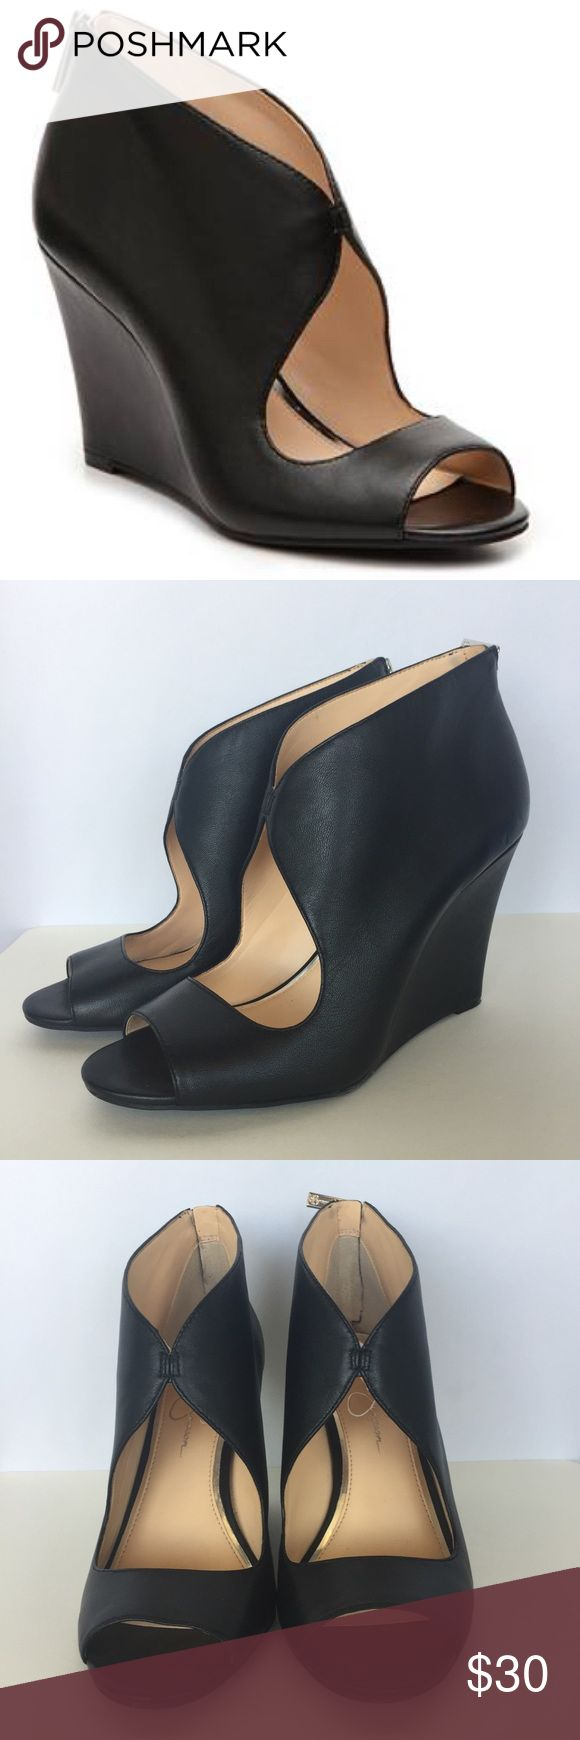 """Jessica Simpson Monika Wedge Pump Gently used condition Jessica Simpson Monika Wedge Pump with very minimal signs of wear. Approximate wedge height 4"""". Jessica Simpson Shoes Wedges"""